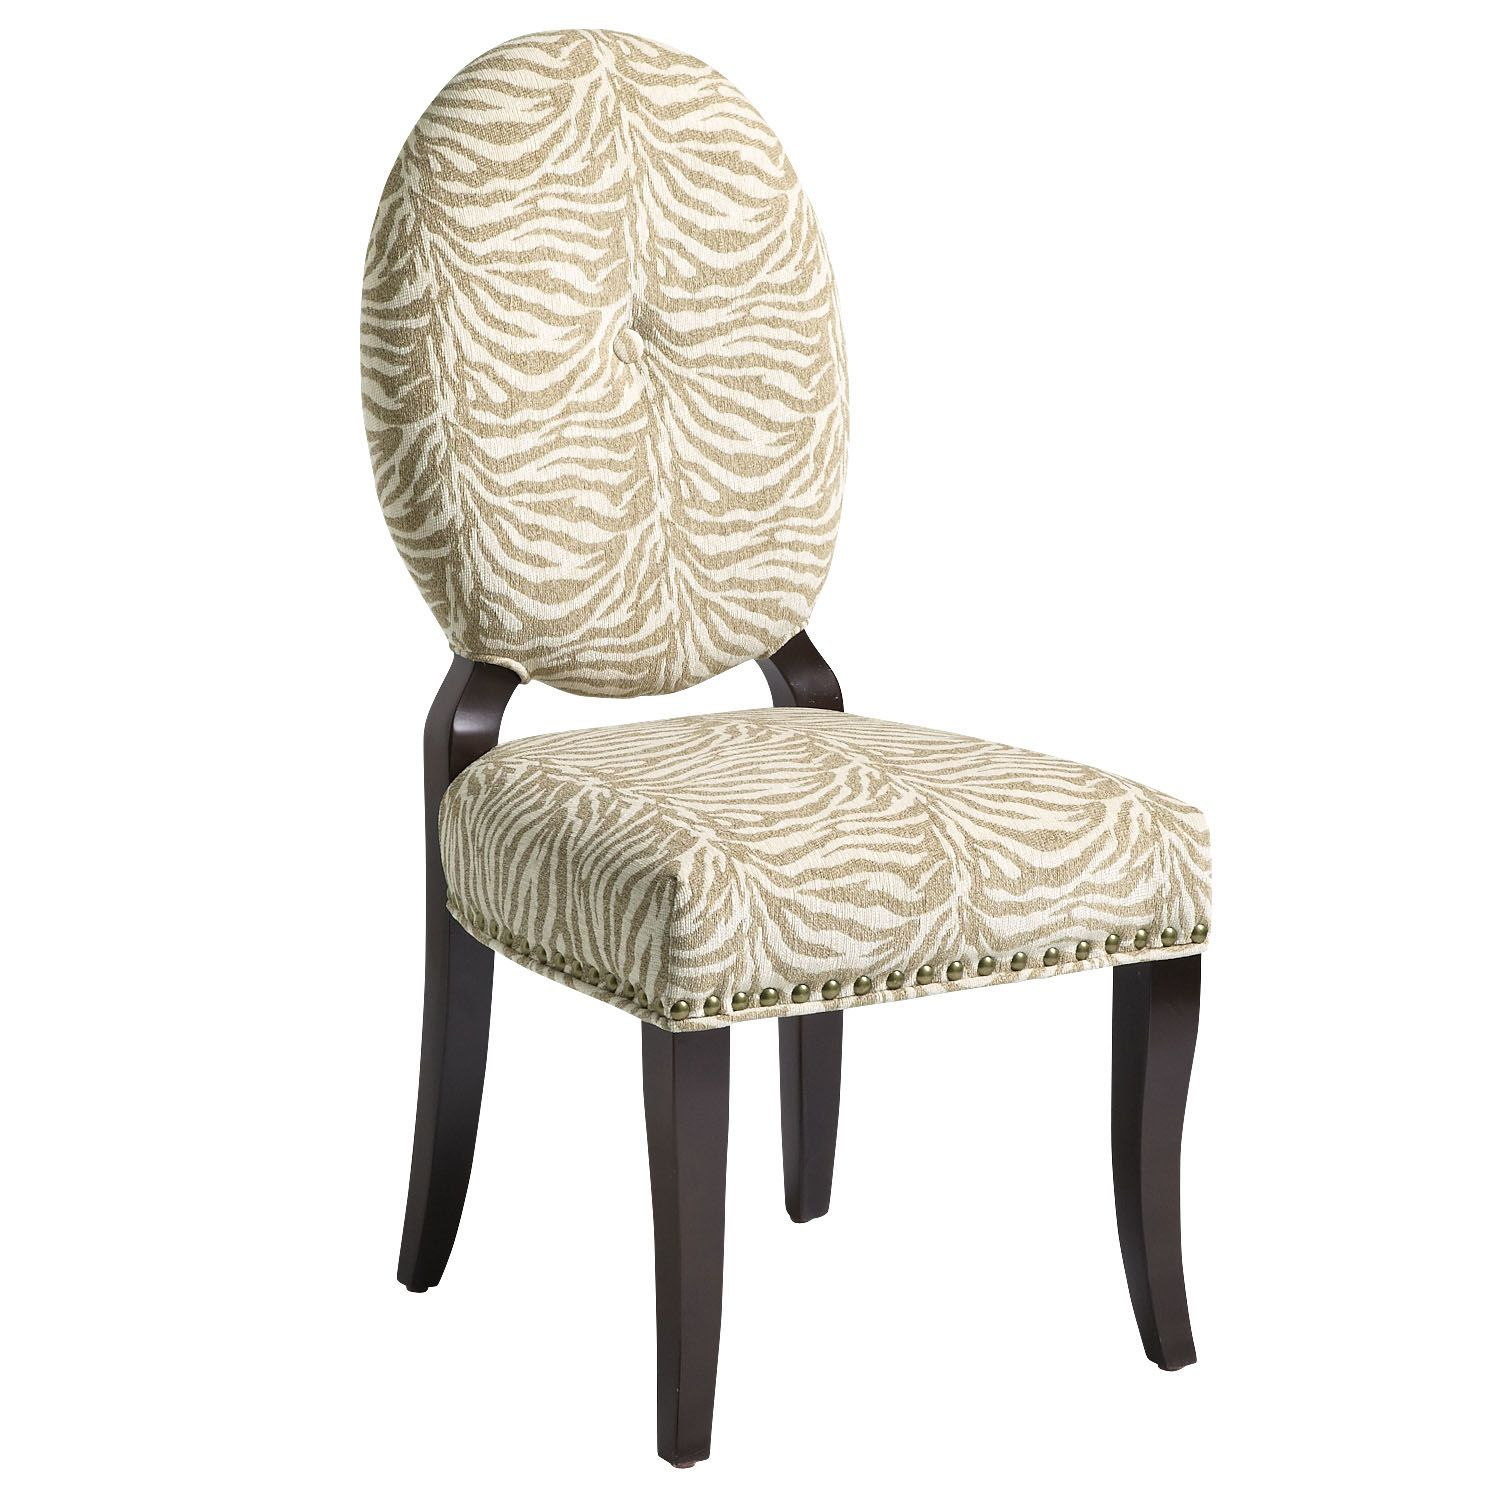 Elise Ovalback Dining Chair  Zebra Tan  Pier 1 Imports  Home Unique Zebra Dining Room Chairs Inspiration Design